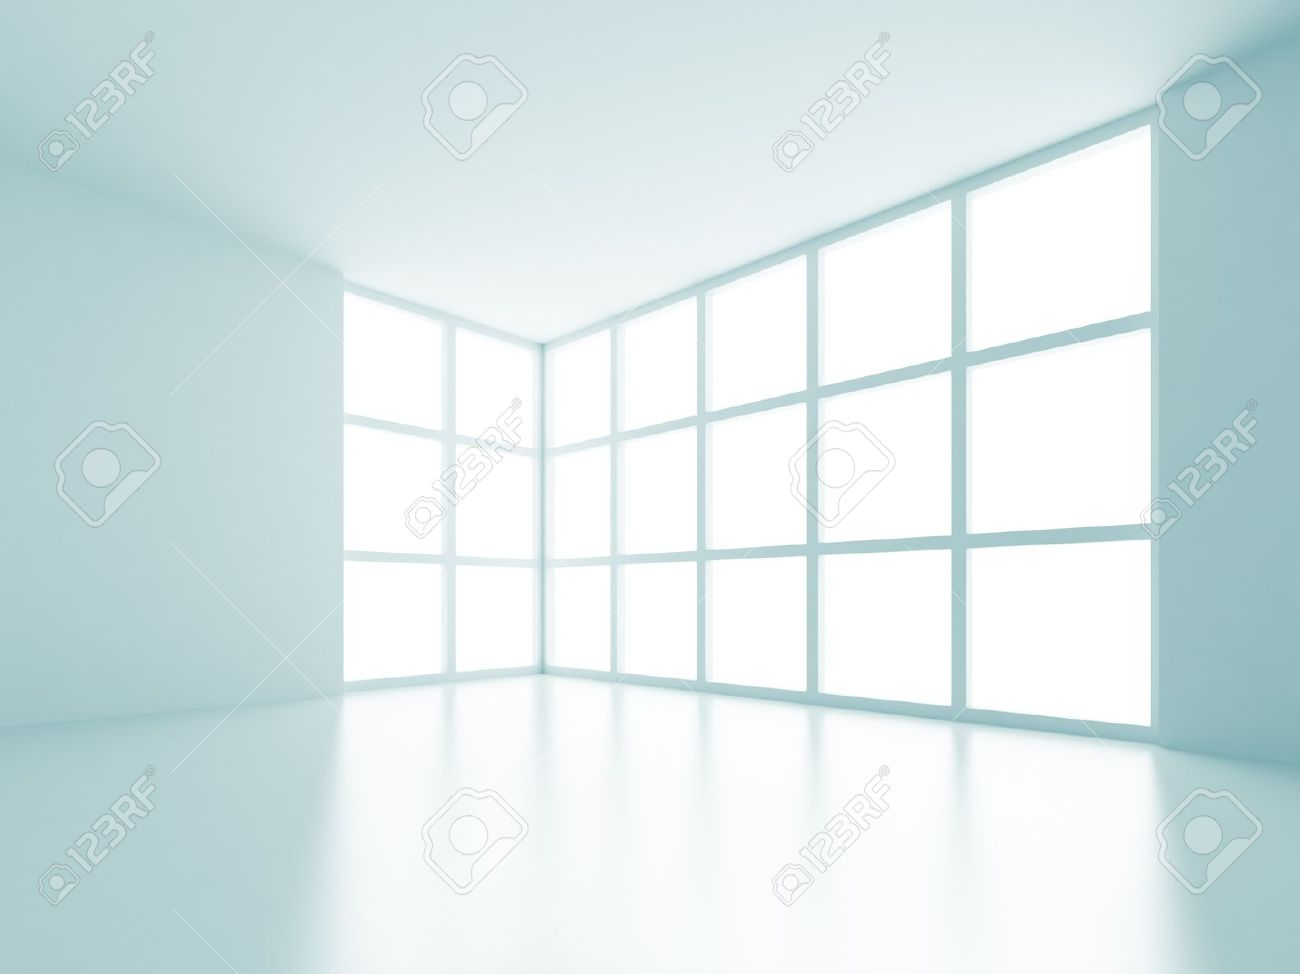 Abstract Interior Background Stock Photo - 8605040